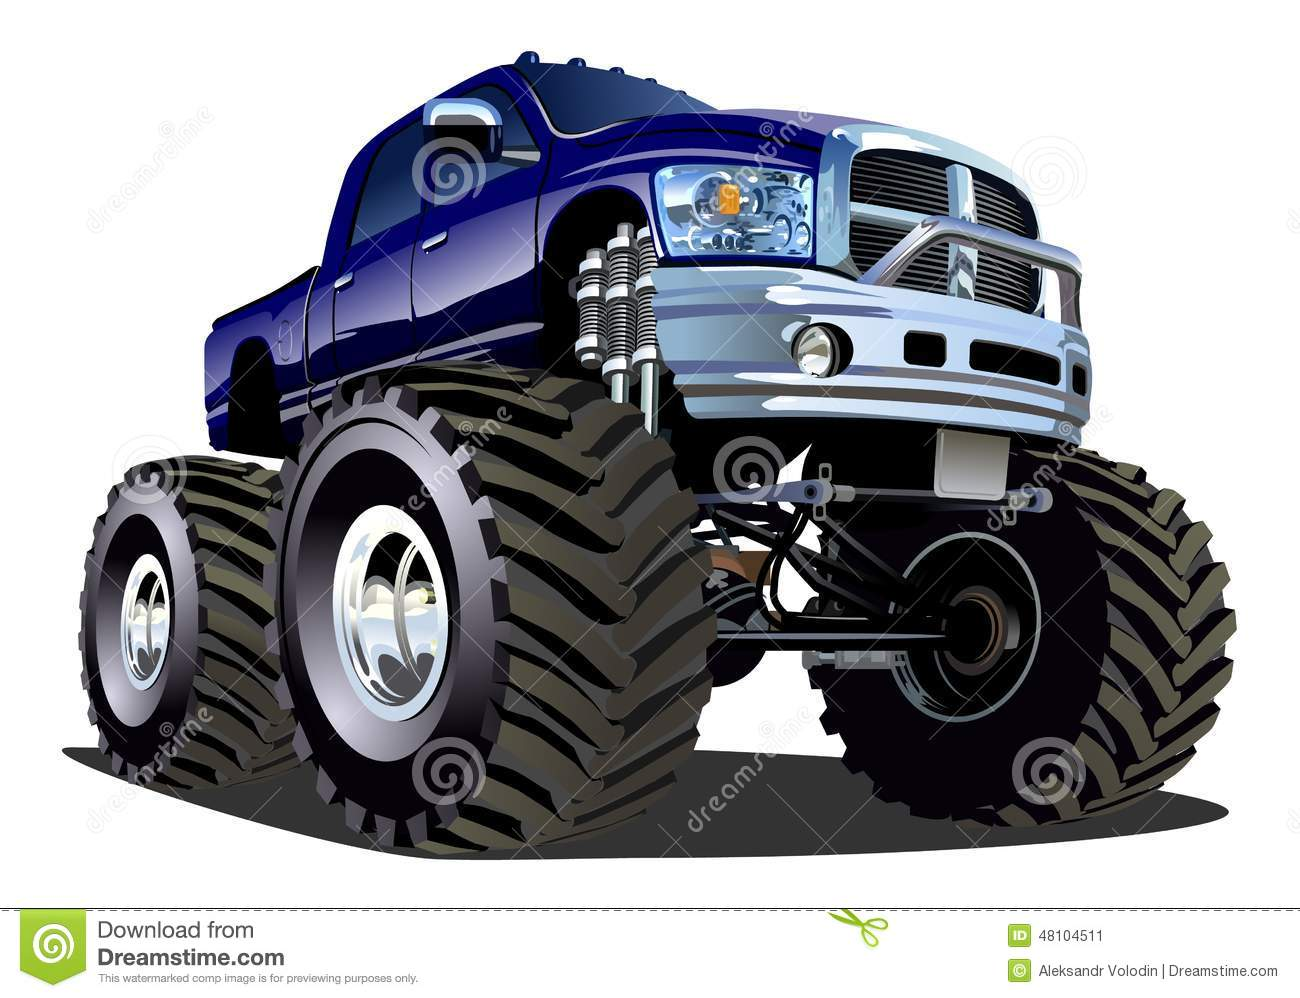 4 wheel drive rc trucks with Stock Illustration Cartoon Monster Truck Available Eps Separated Groups Layers Transparency Effects One Click Repaint Image48104511 on 1985 Chevrolet K5 Blazer as well New 2018 Chrysler Pacifica Murfreesboro Tn 2c4rc1gg3jr174479 likewise 391353726608 together with Lego Technic Monster Truck 42005 as well Gas Powered Rc Monster Truck 110 2 4g Hummer Remote Control Car.